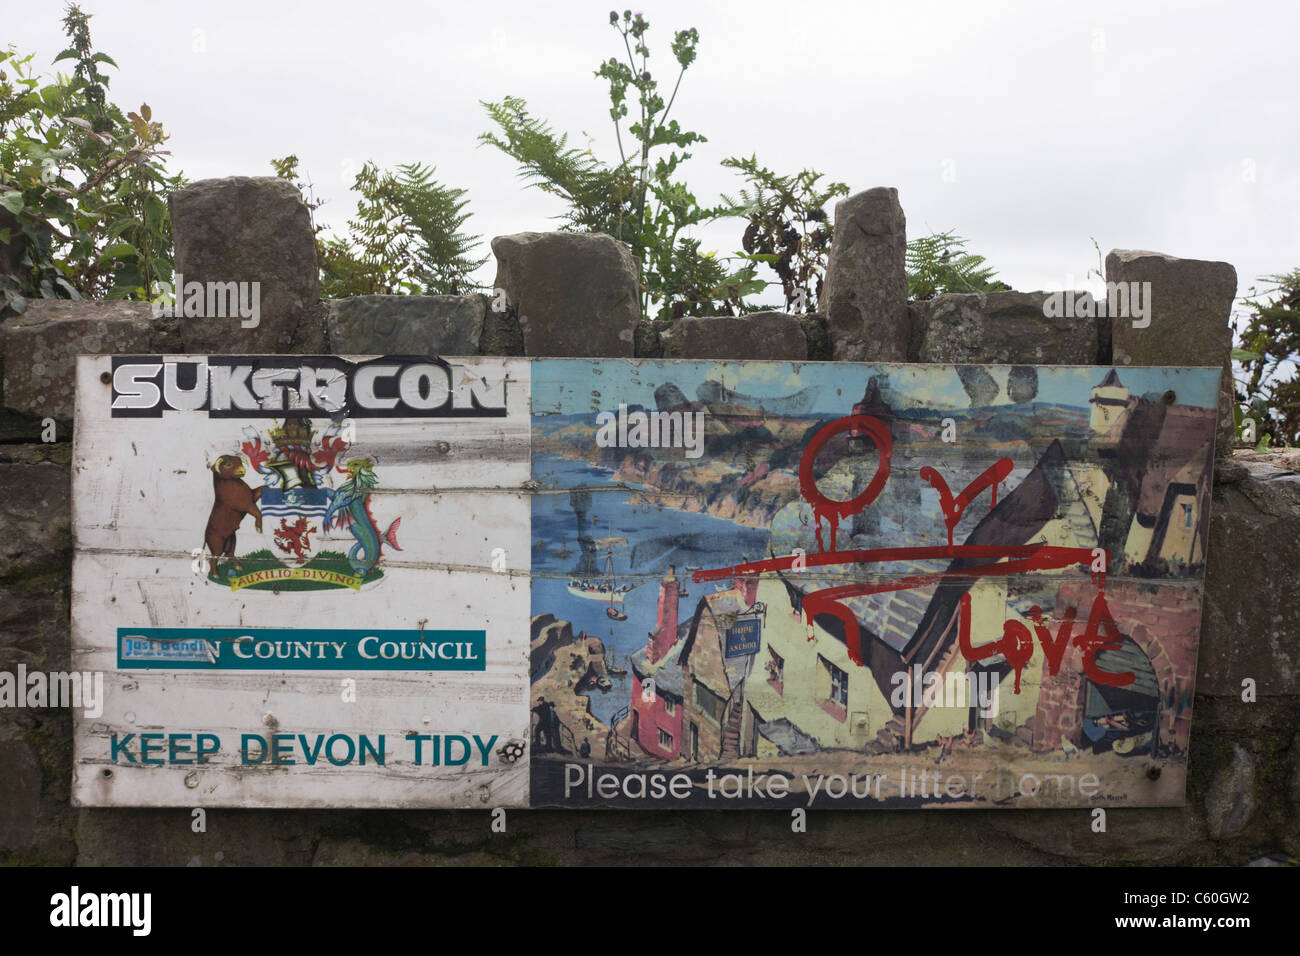 A dirty Keep Devon Tidy council sign discouraging litter at their seaside has been written over by graffiti. Stock Photo